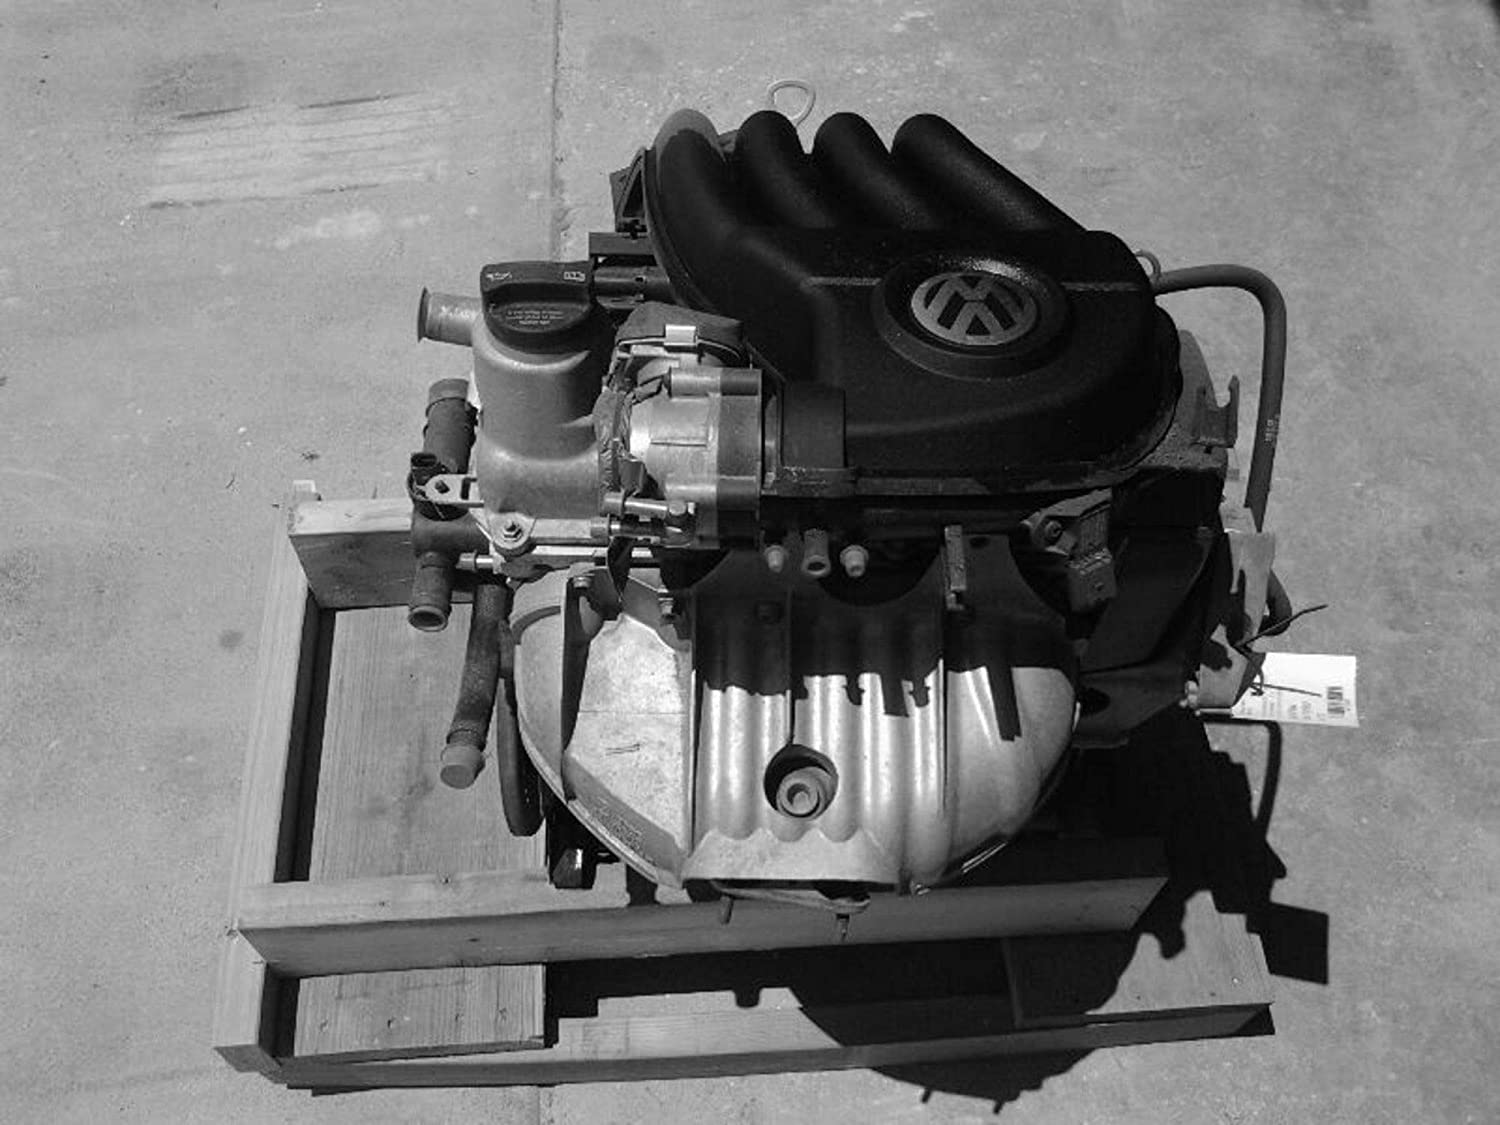 Engine Complete Assembly Credence fits Volkswagen Jetta Mesa Mall 5th K 2.0L VIN di